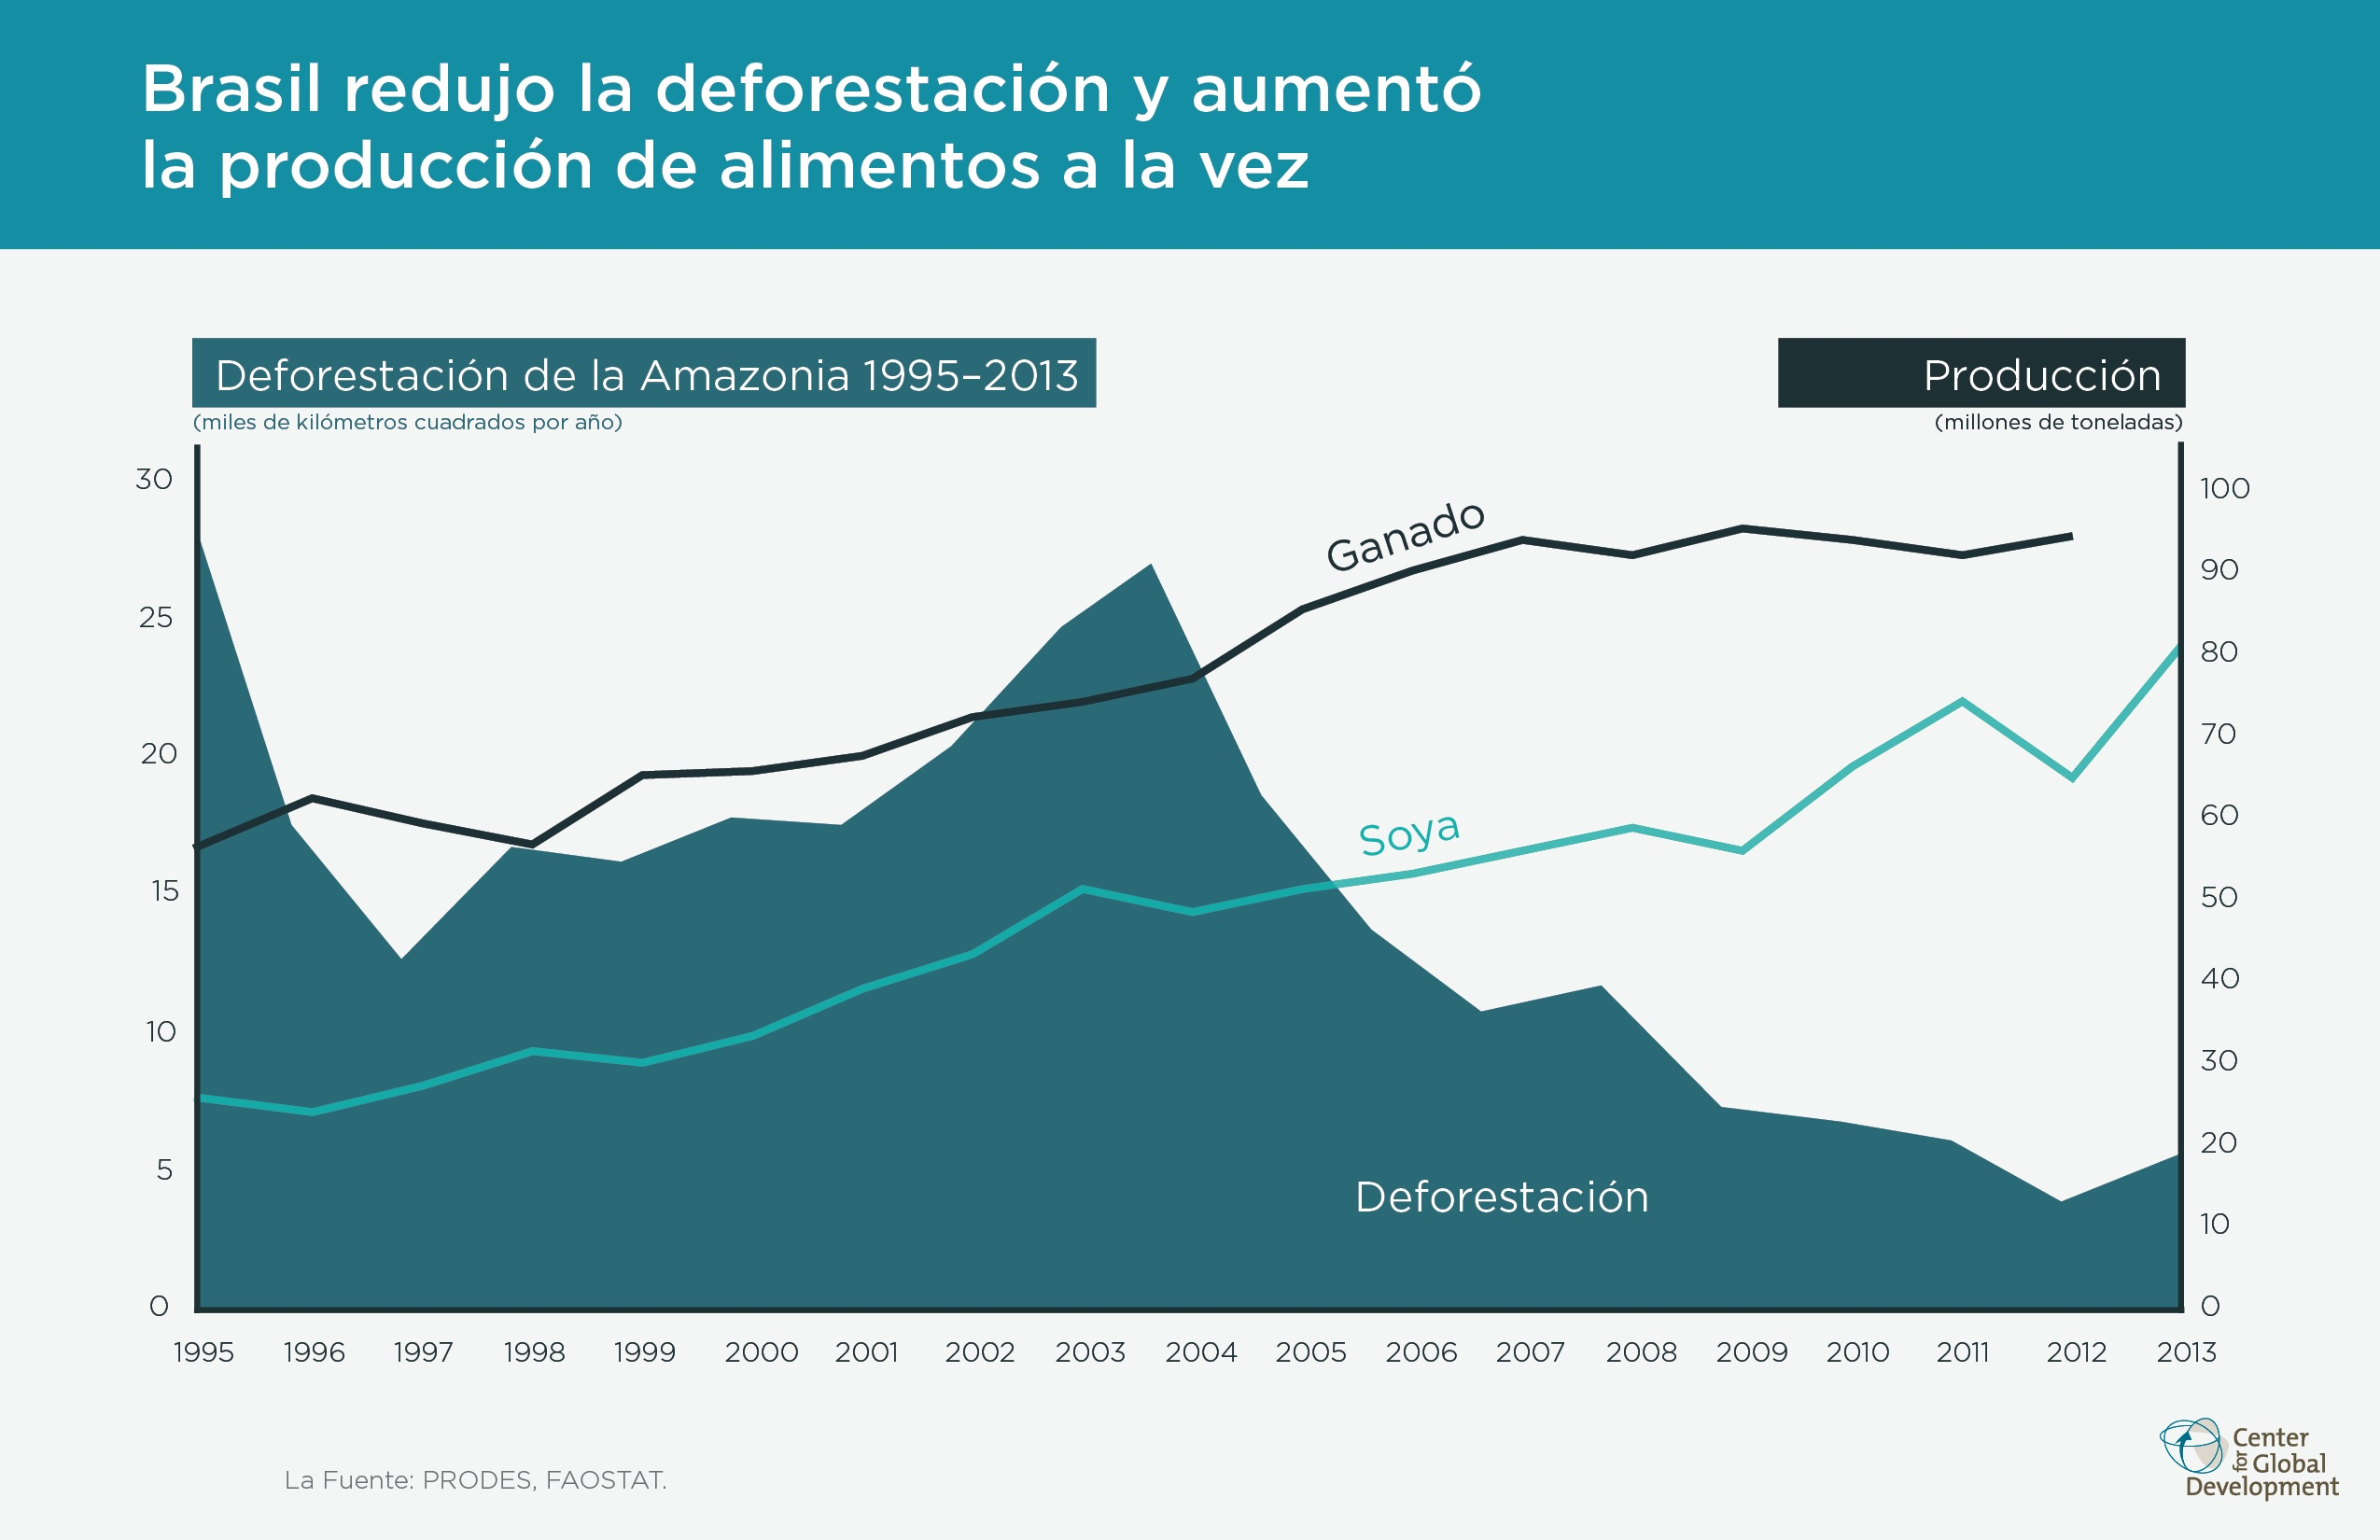 Can Brazil stay the course on reducing deforestation?